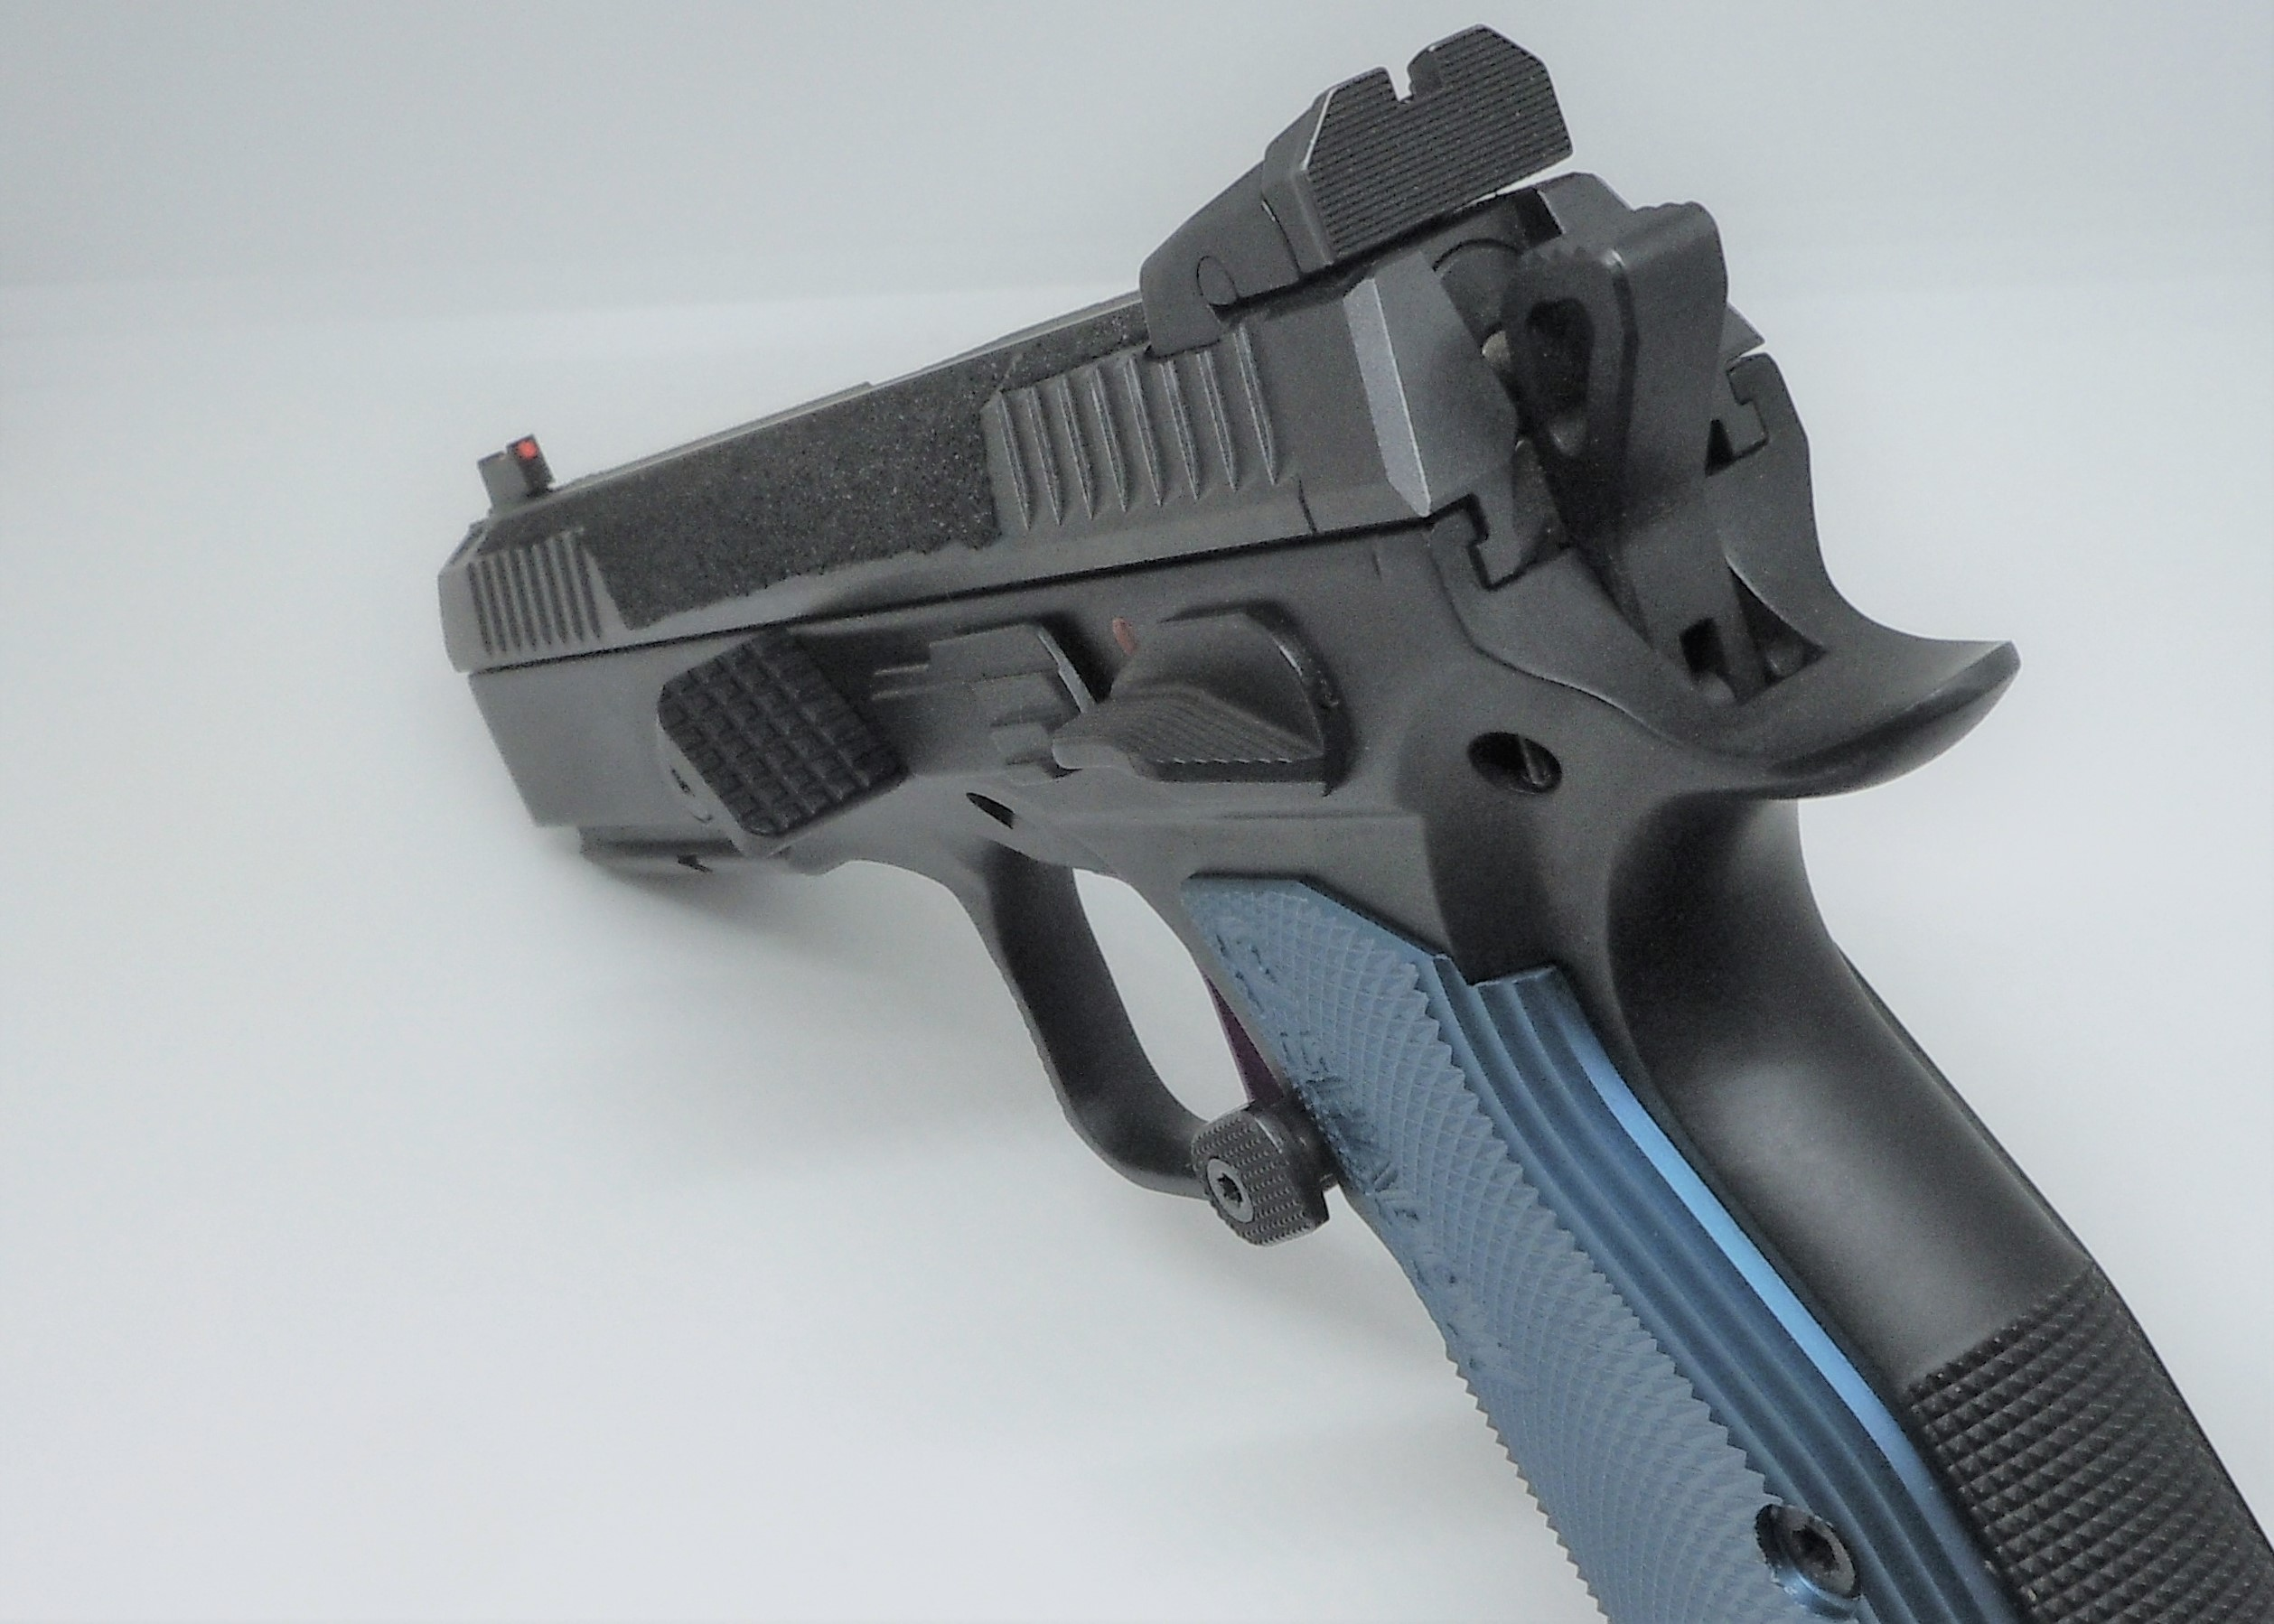 Thumb Rest -- CZ Small Frame (CZ75, Shadow, Shadow 2, etc ) for IPSC  Standard Division